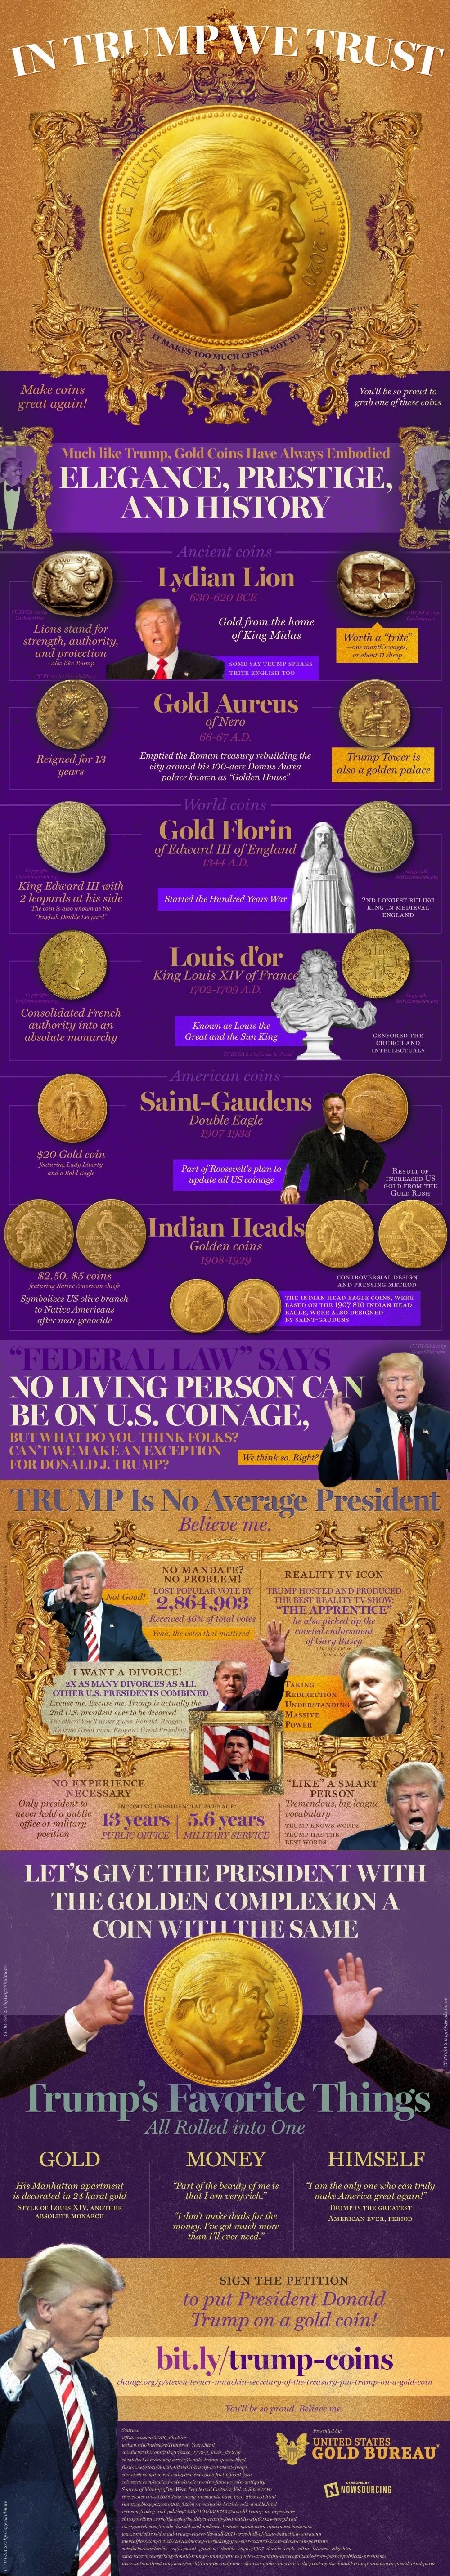 President Trump Gold Coin #infographic